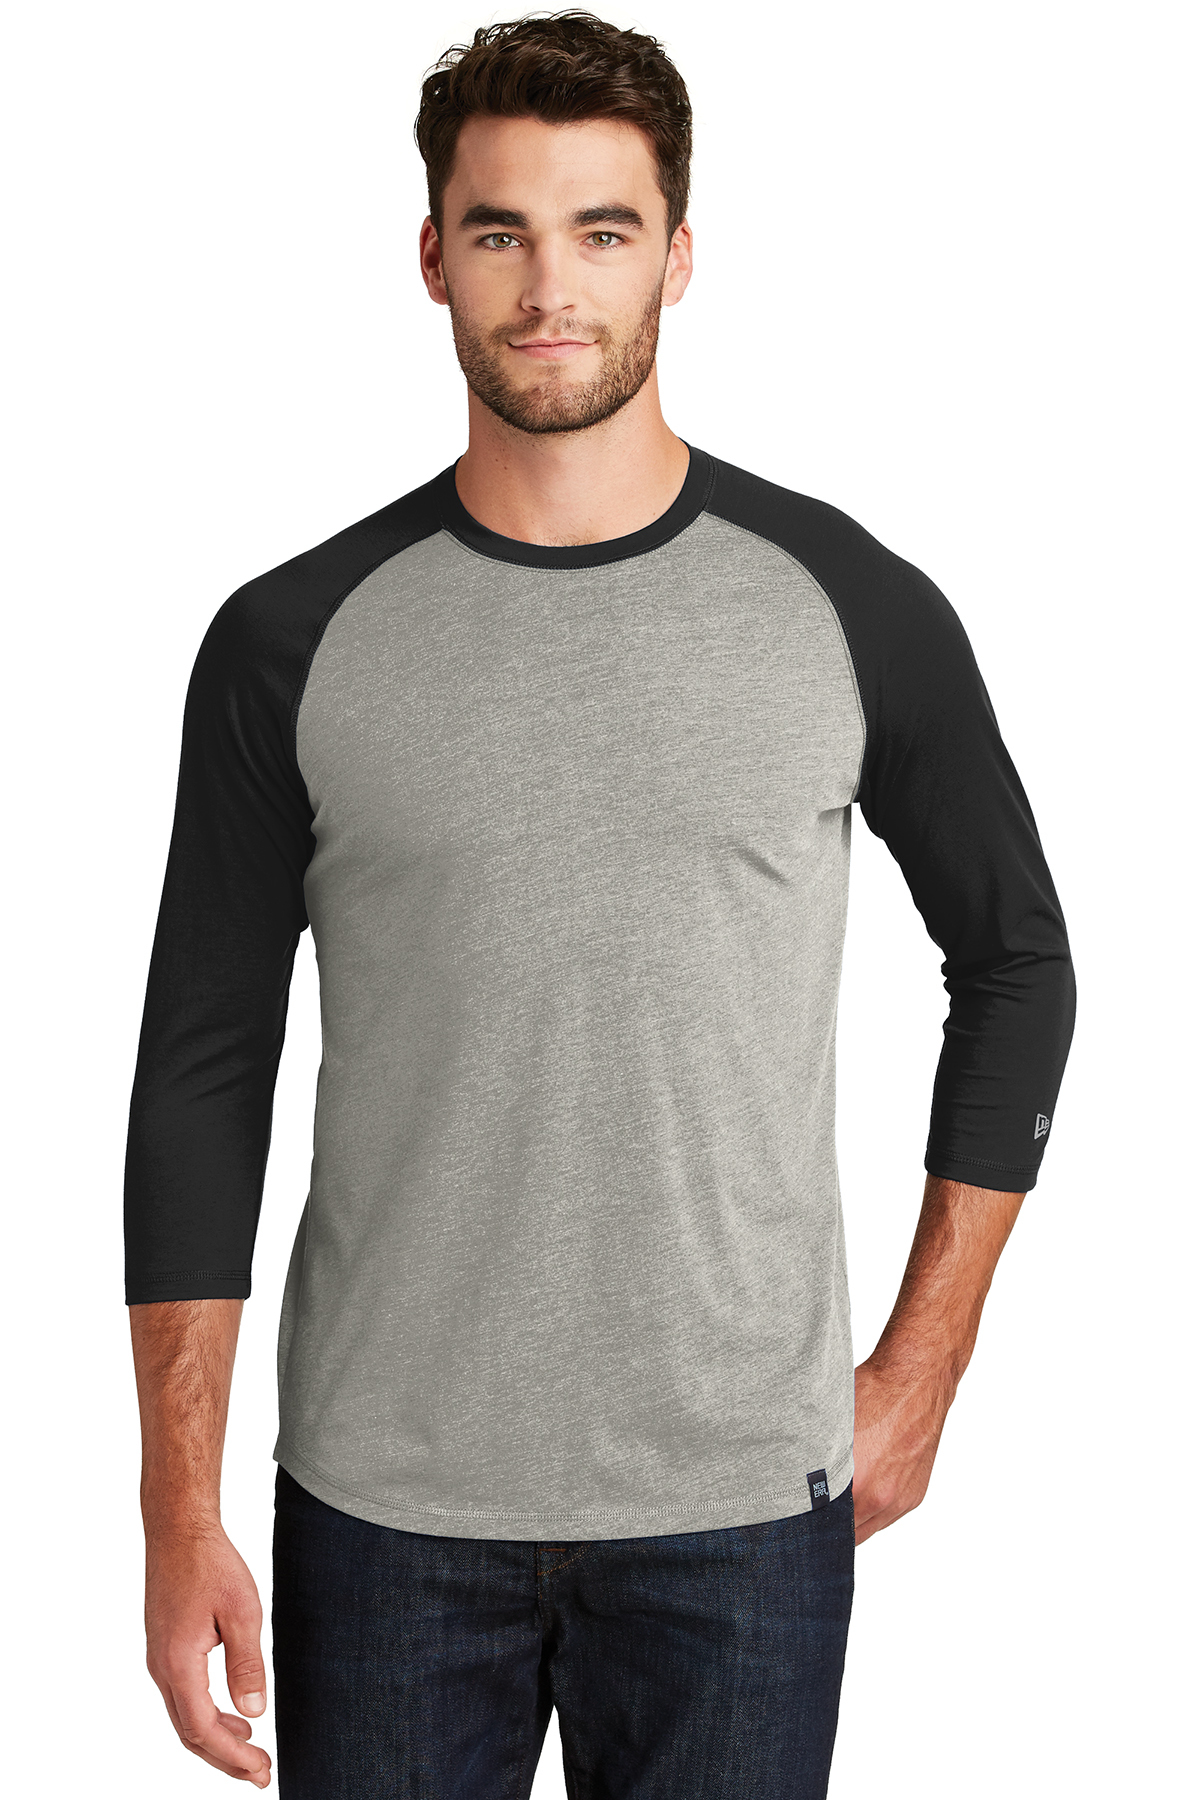 New Era NEA104 - Men's Heritage Blend 3/4 Sleeve Baseball ...